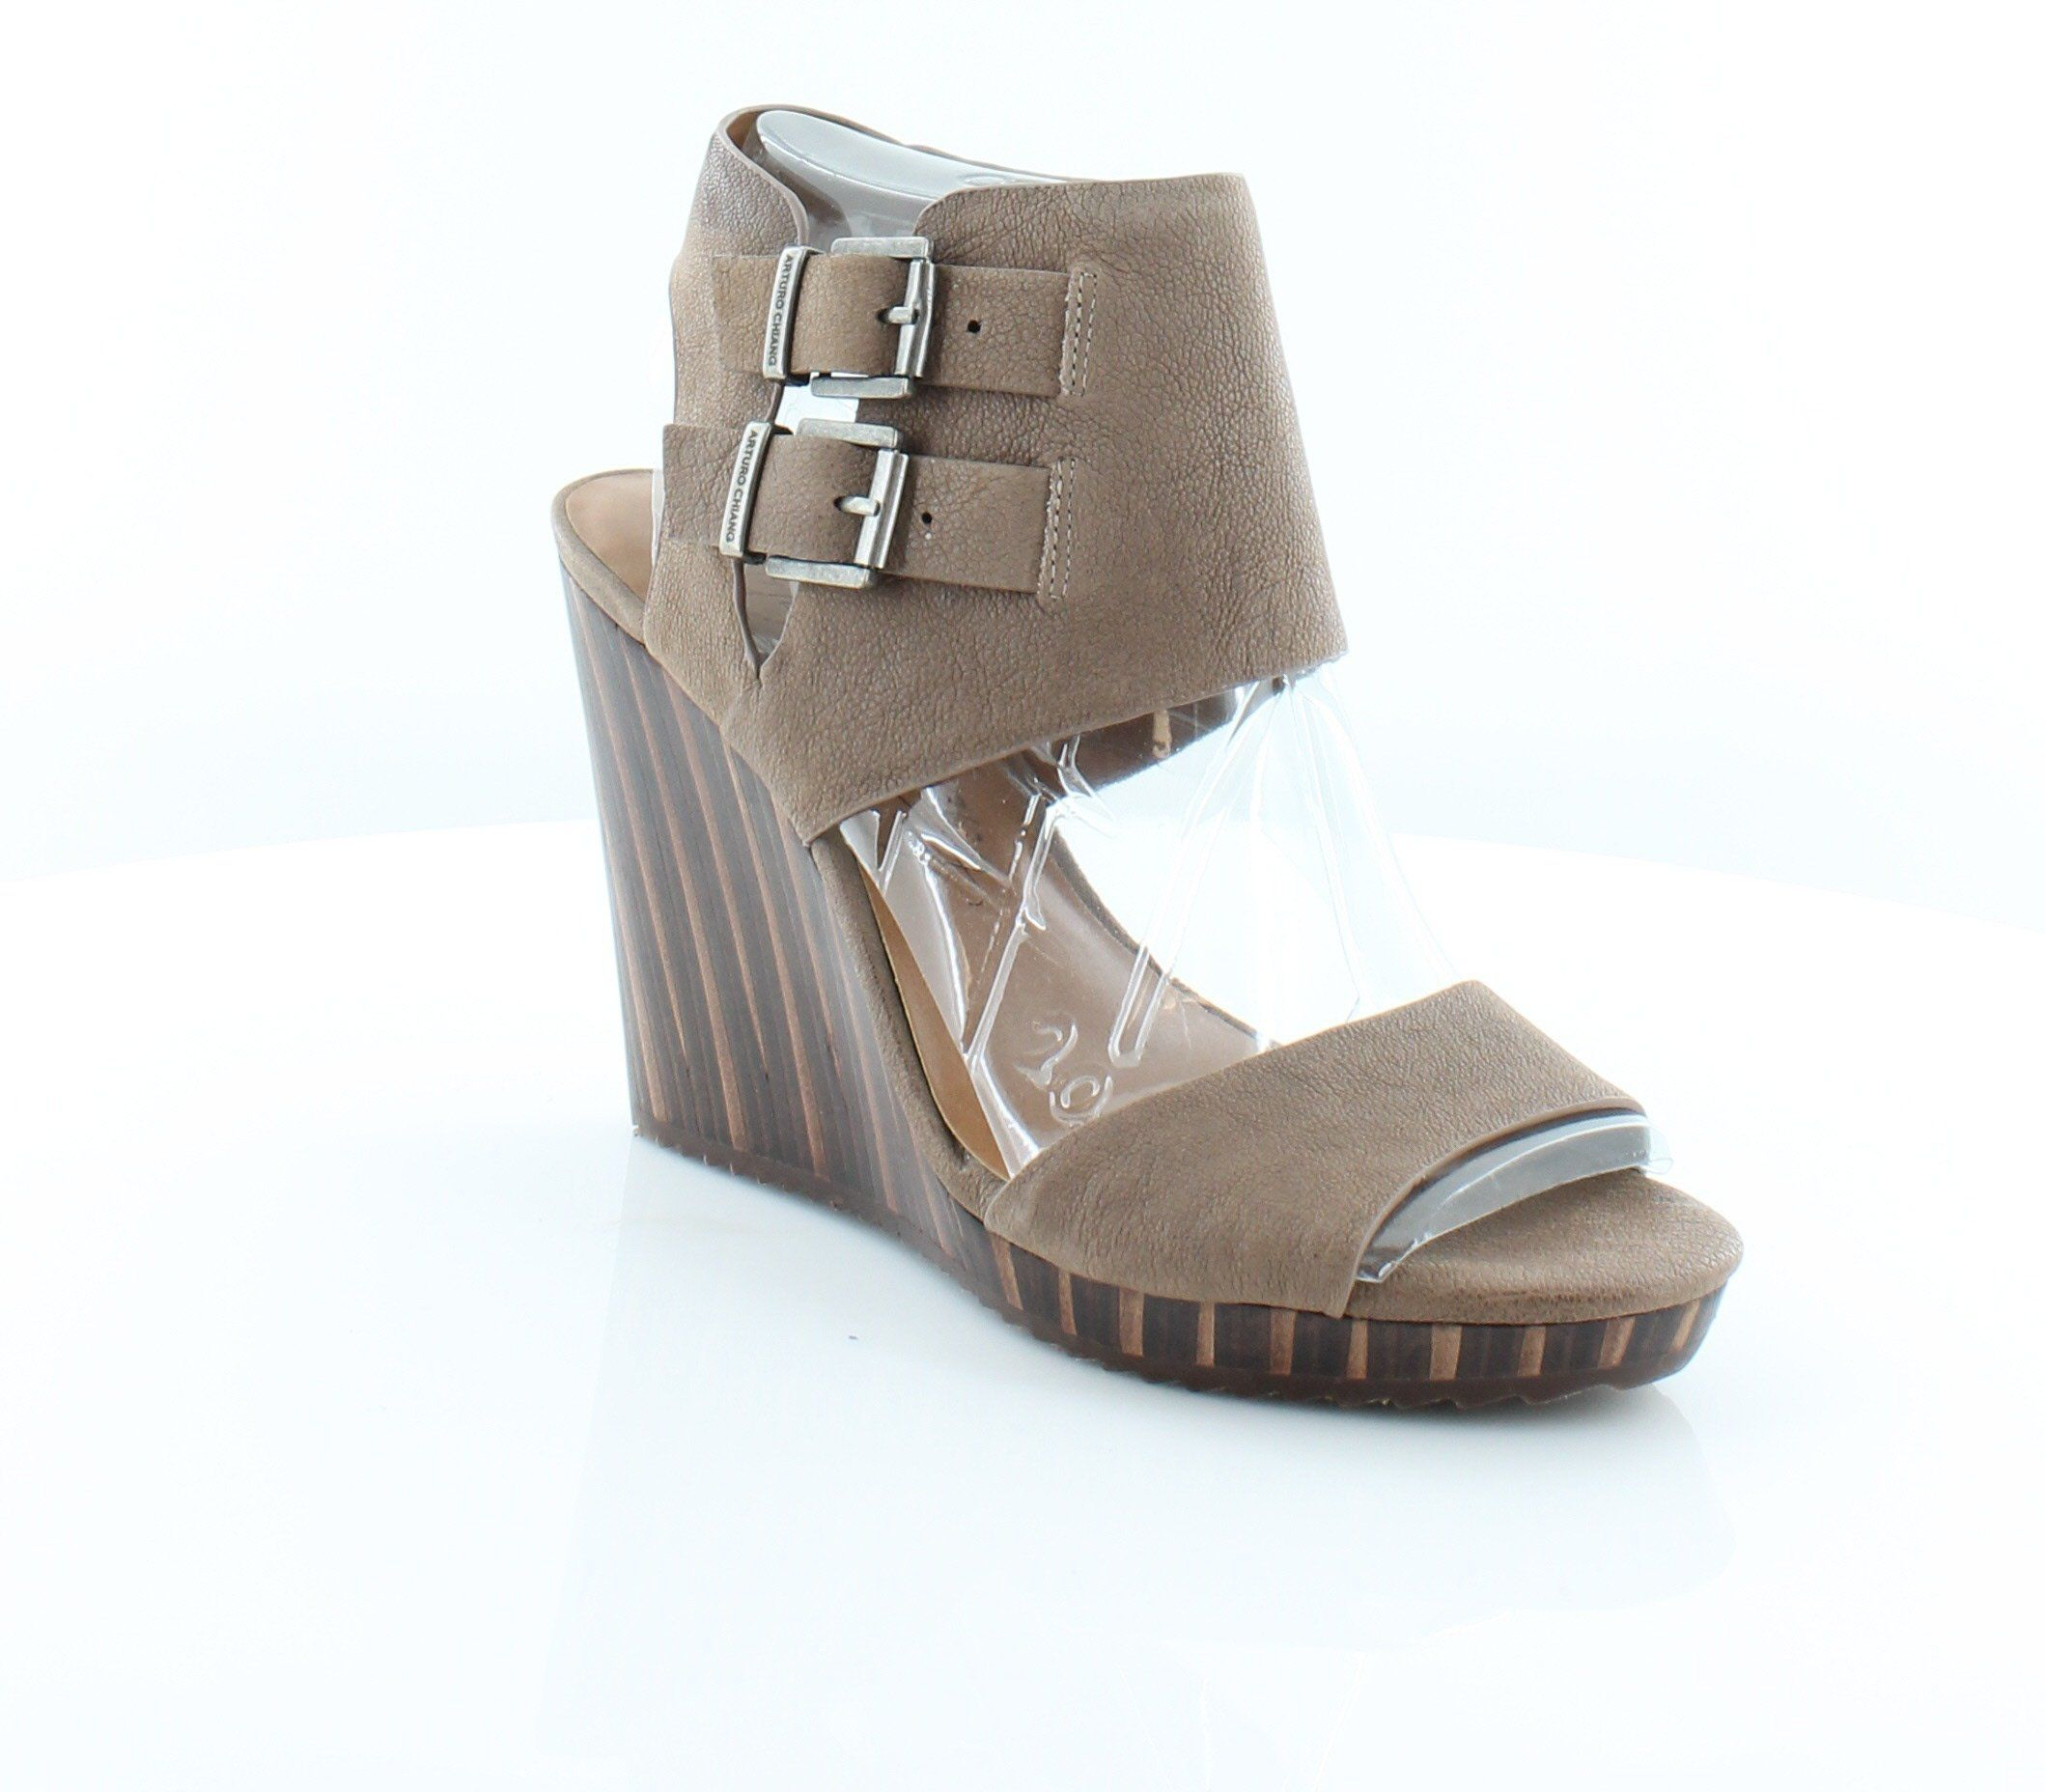 Arturo Chiang Annibella Women's Heels Dk Moro Size 6.5 M -- Awesome products selected by Anna Churchill